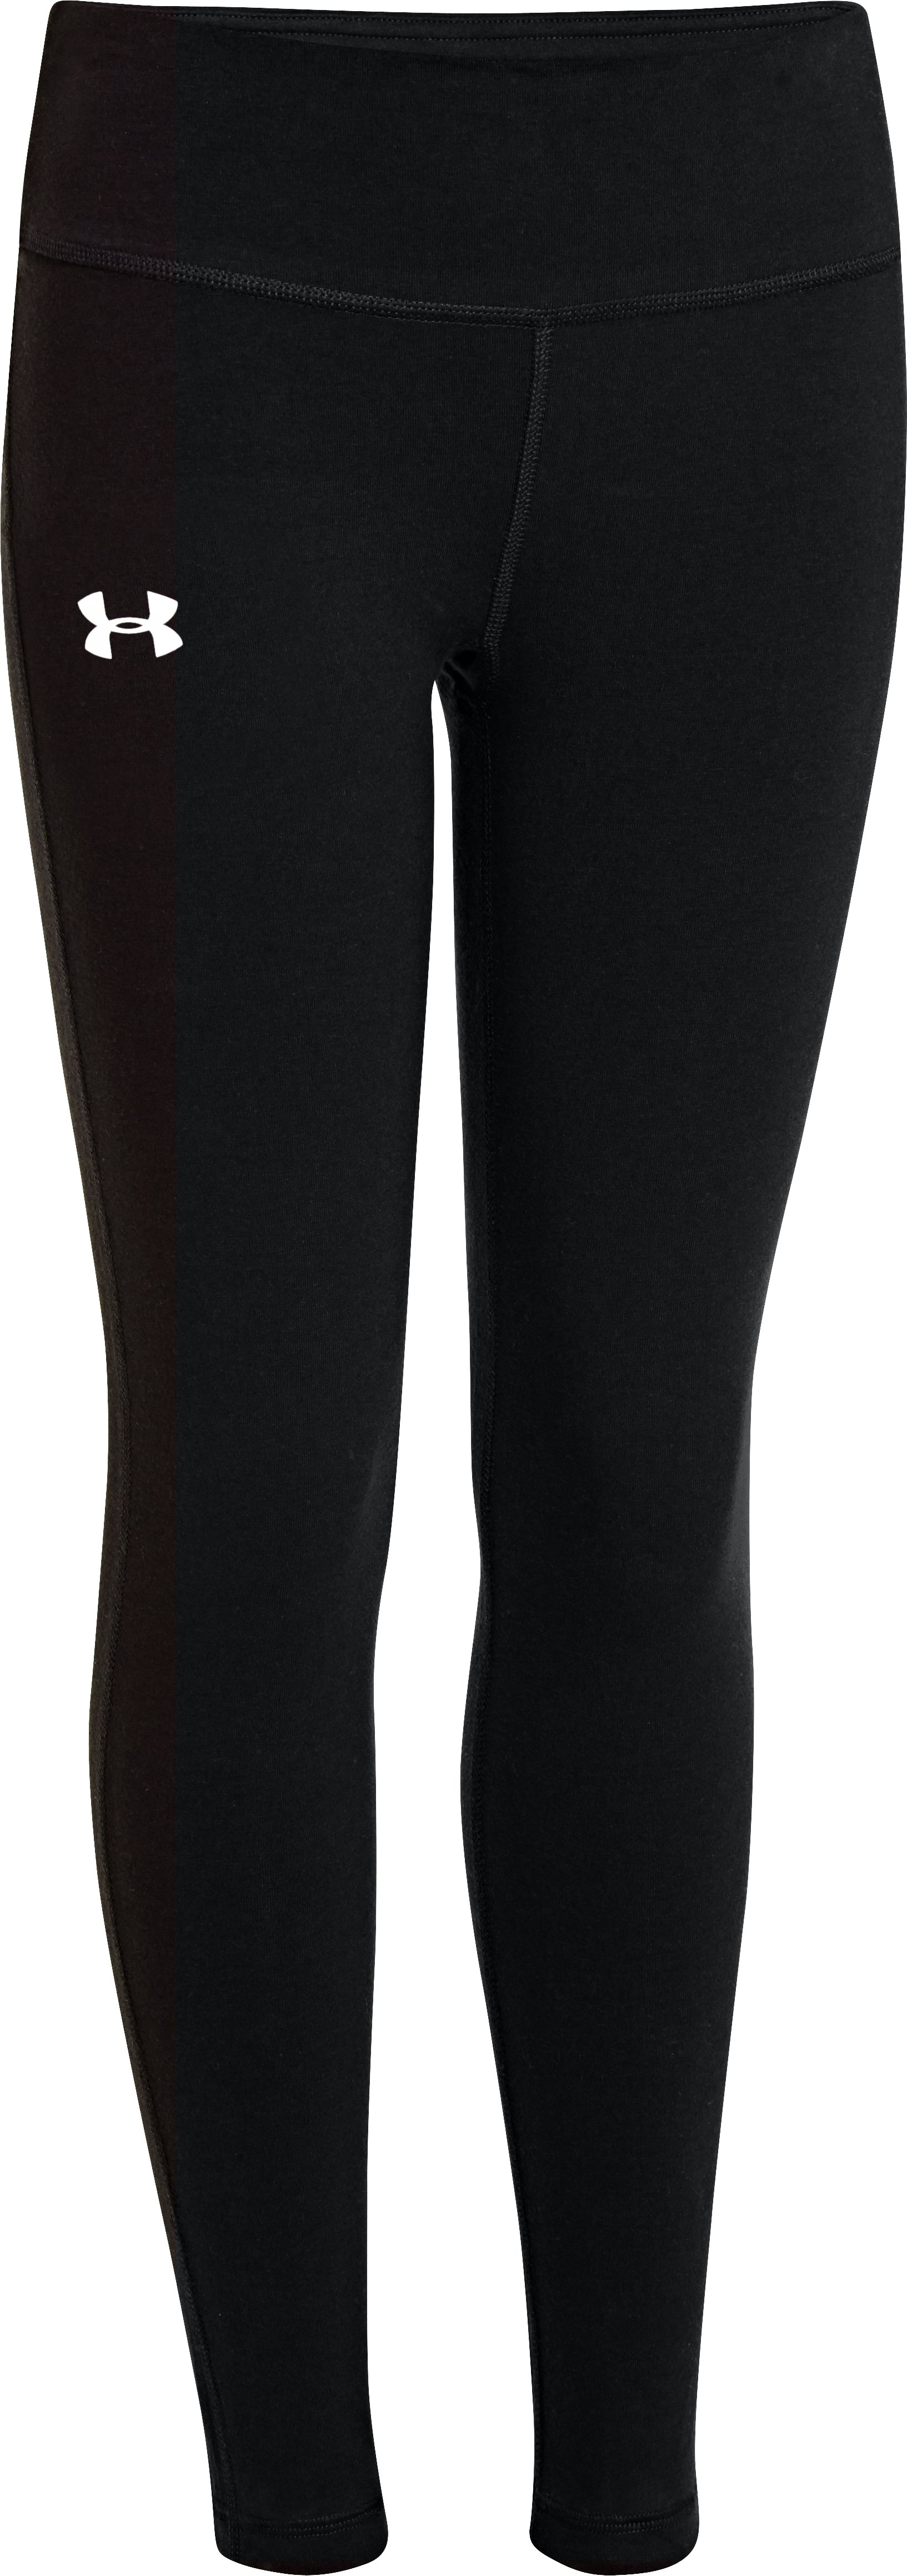 Girls' Ultimate Charged Cotton® Legging, Black